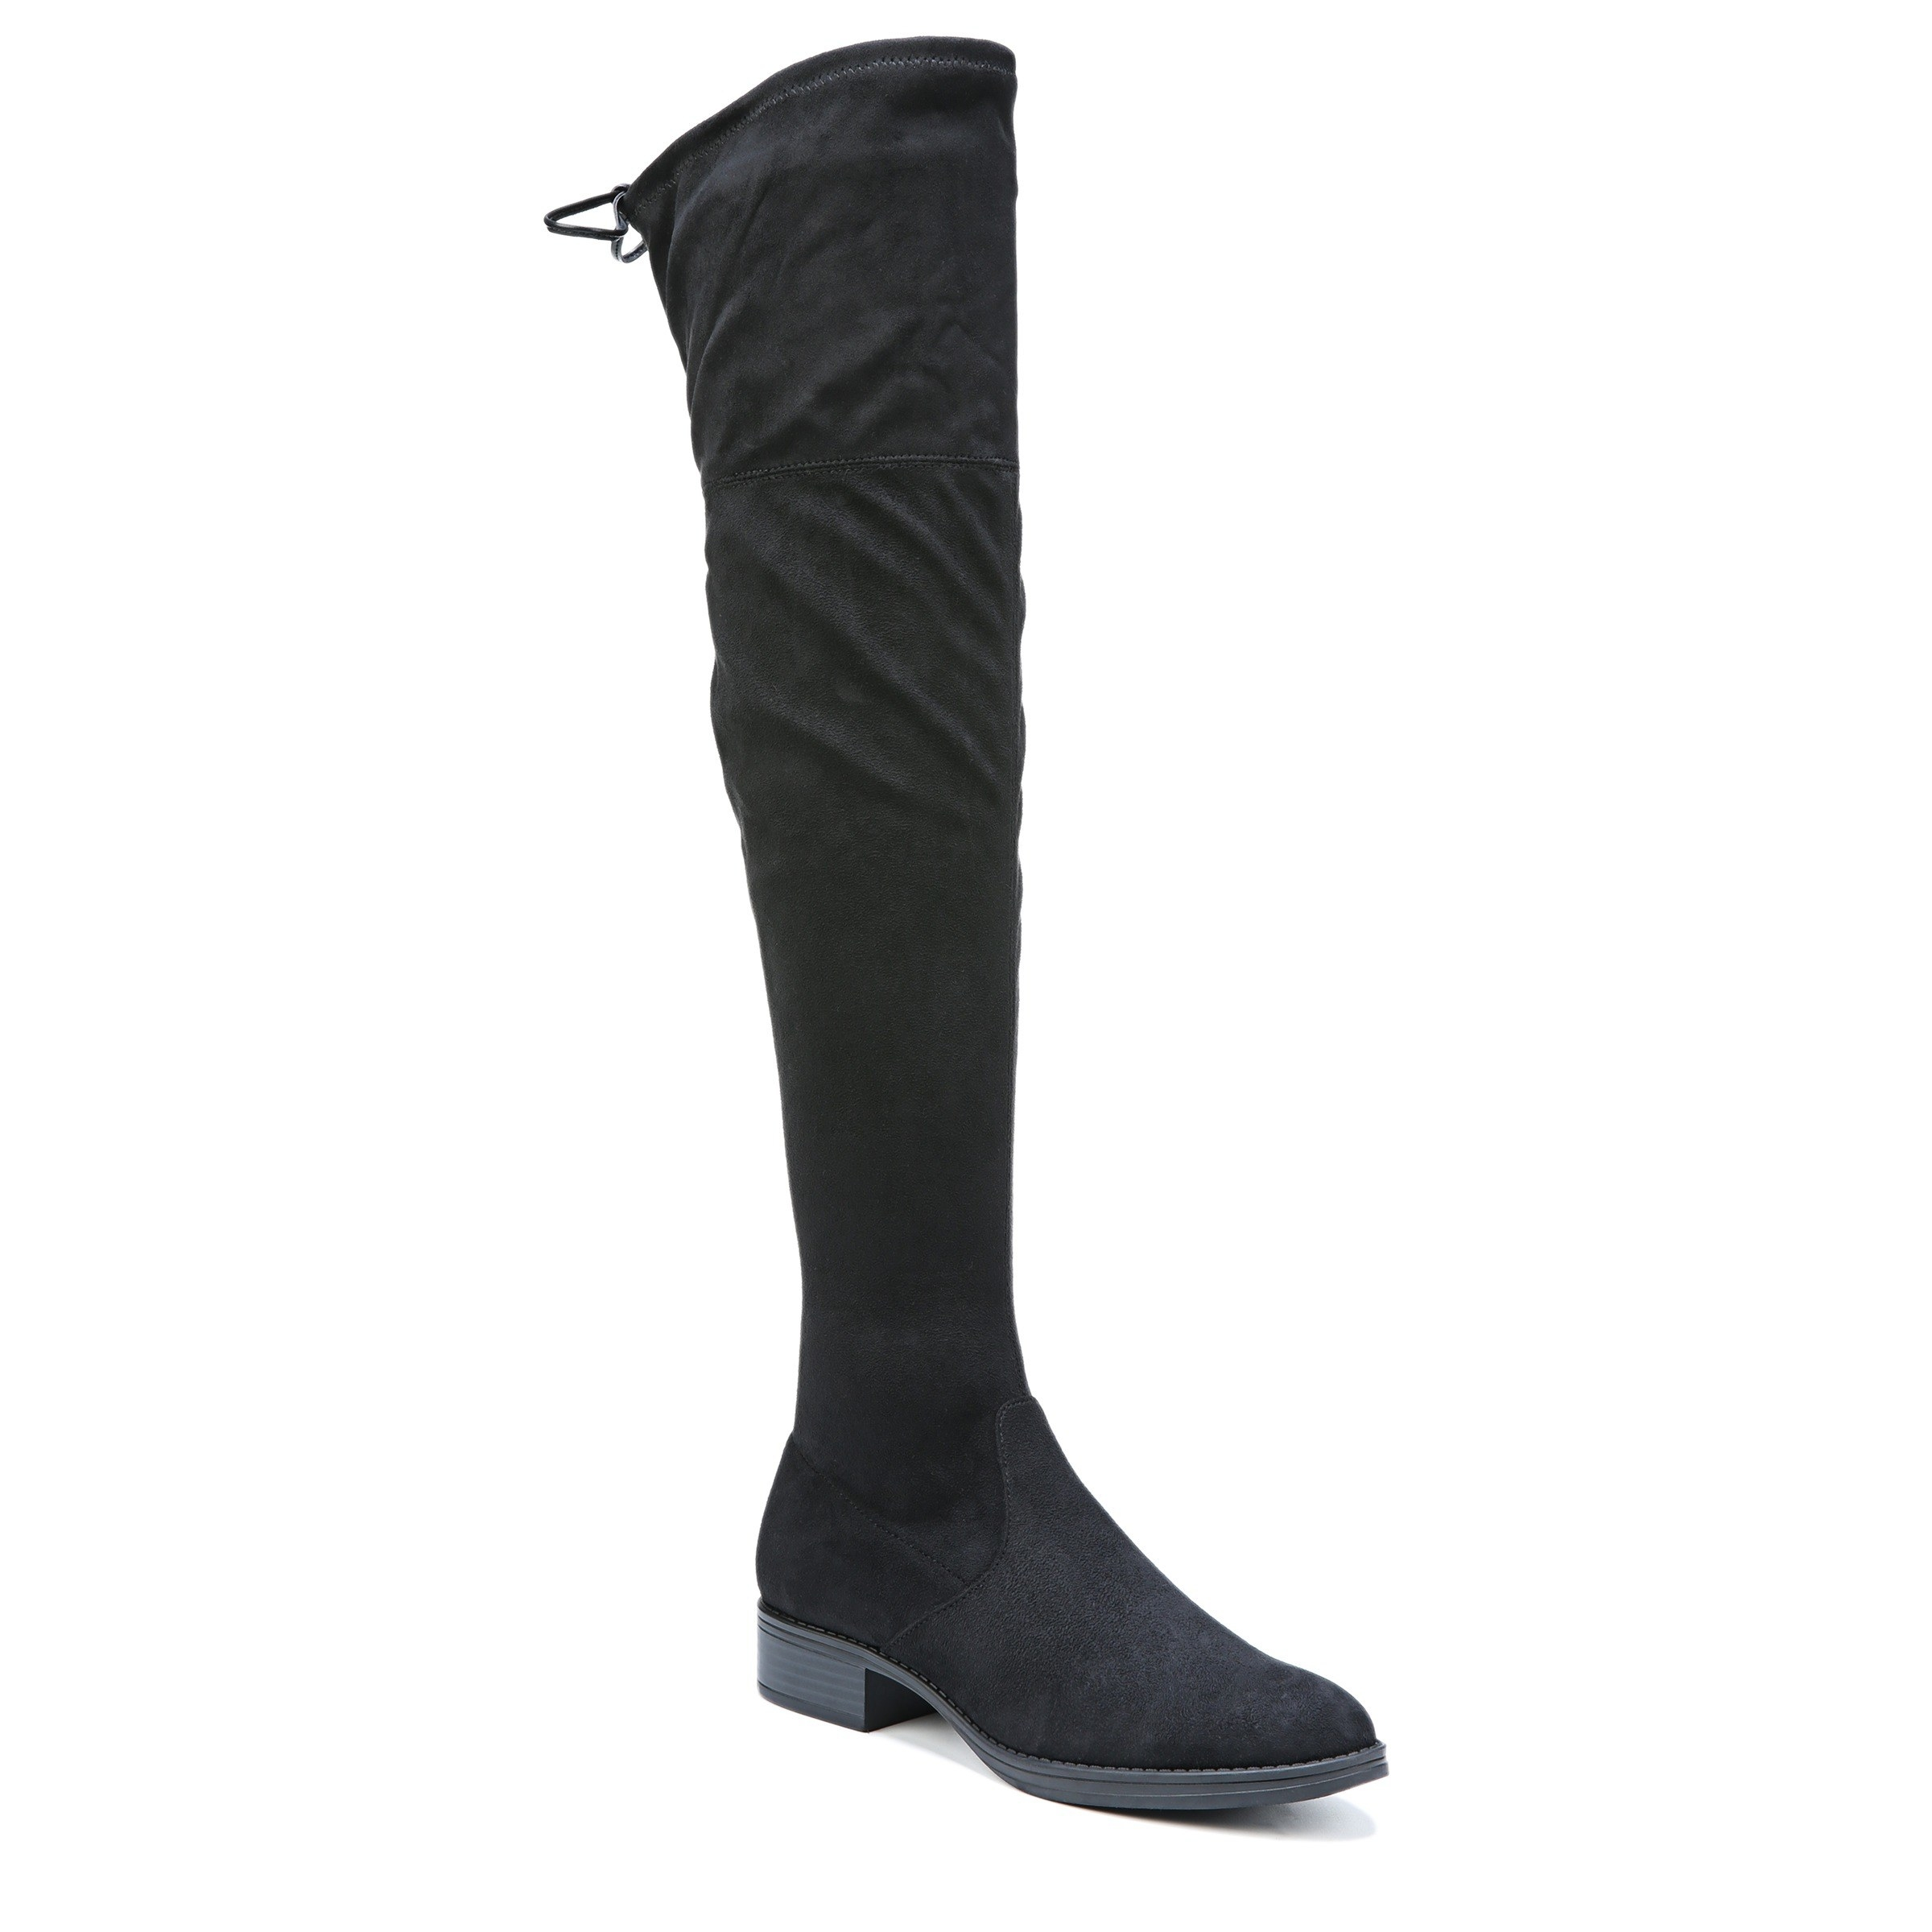 The black tall boots